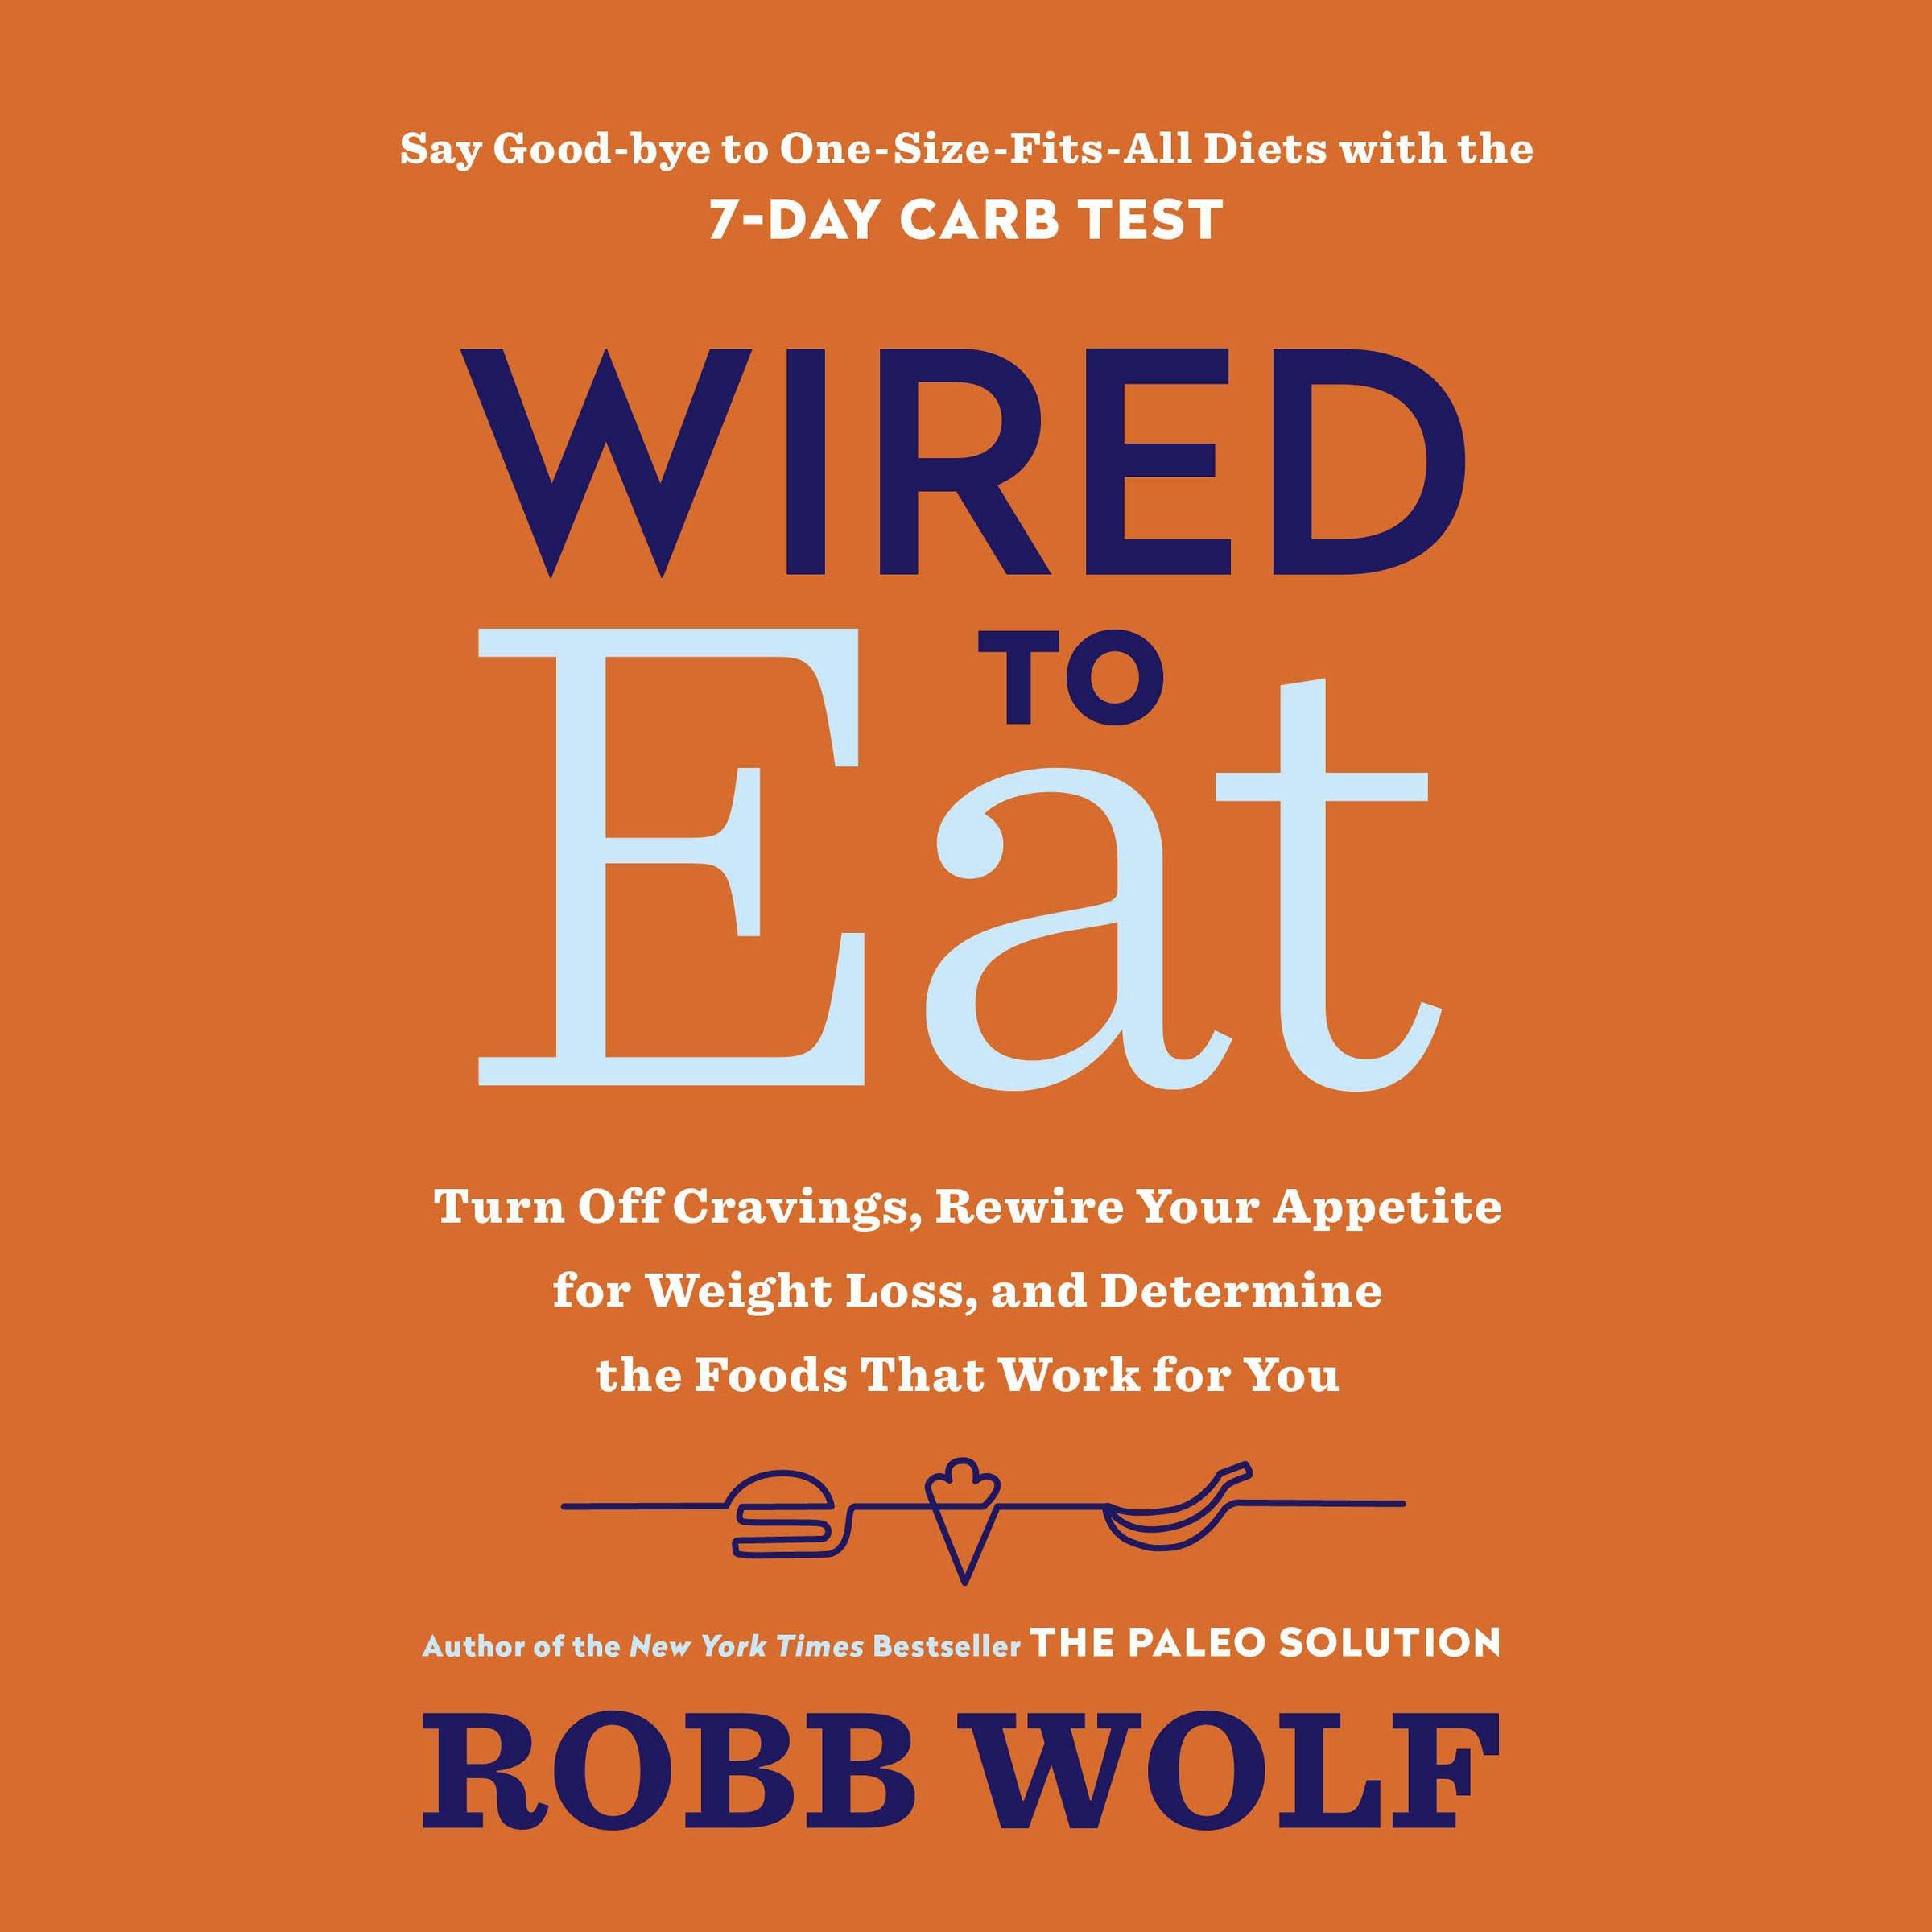 Wired to Eat: Turn Off Cravings, Rewire Your Appetite for Weight Loss, and Determine the Foods That Work for You